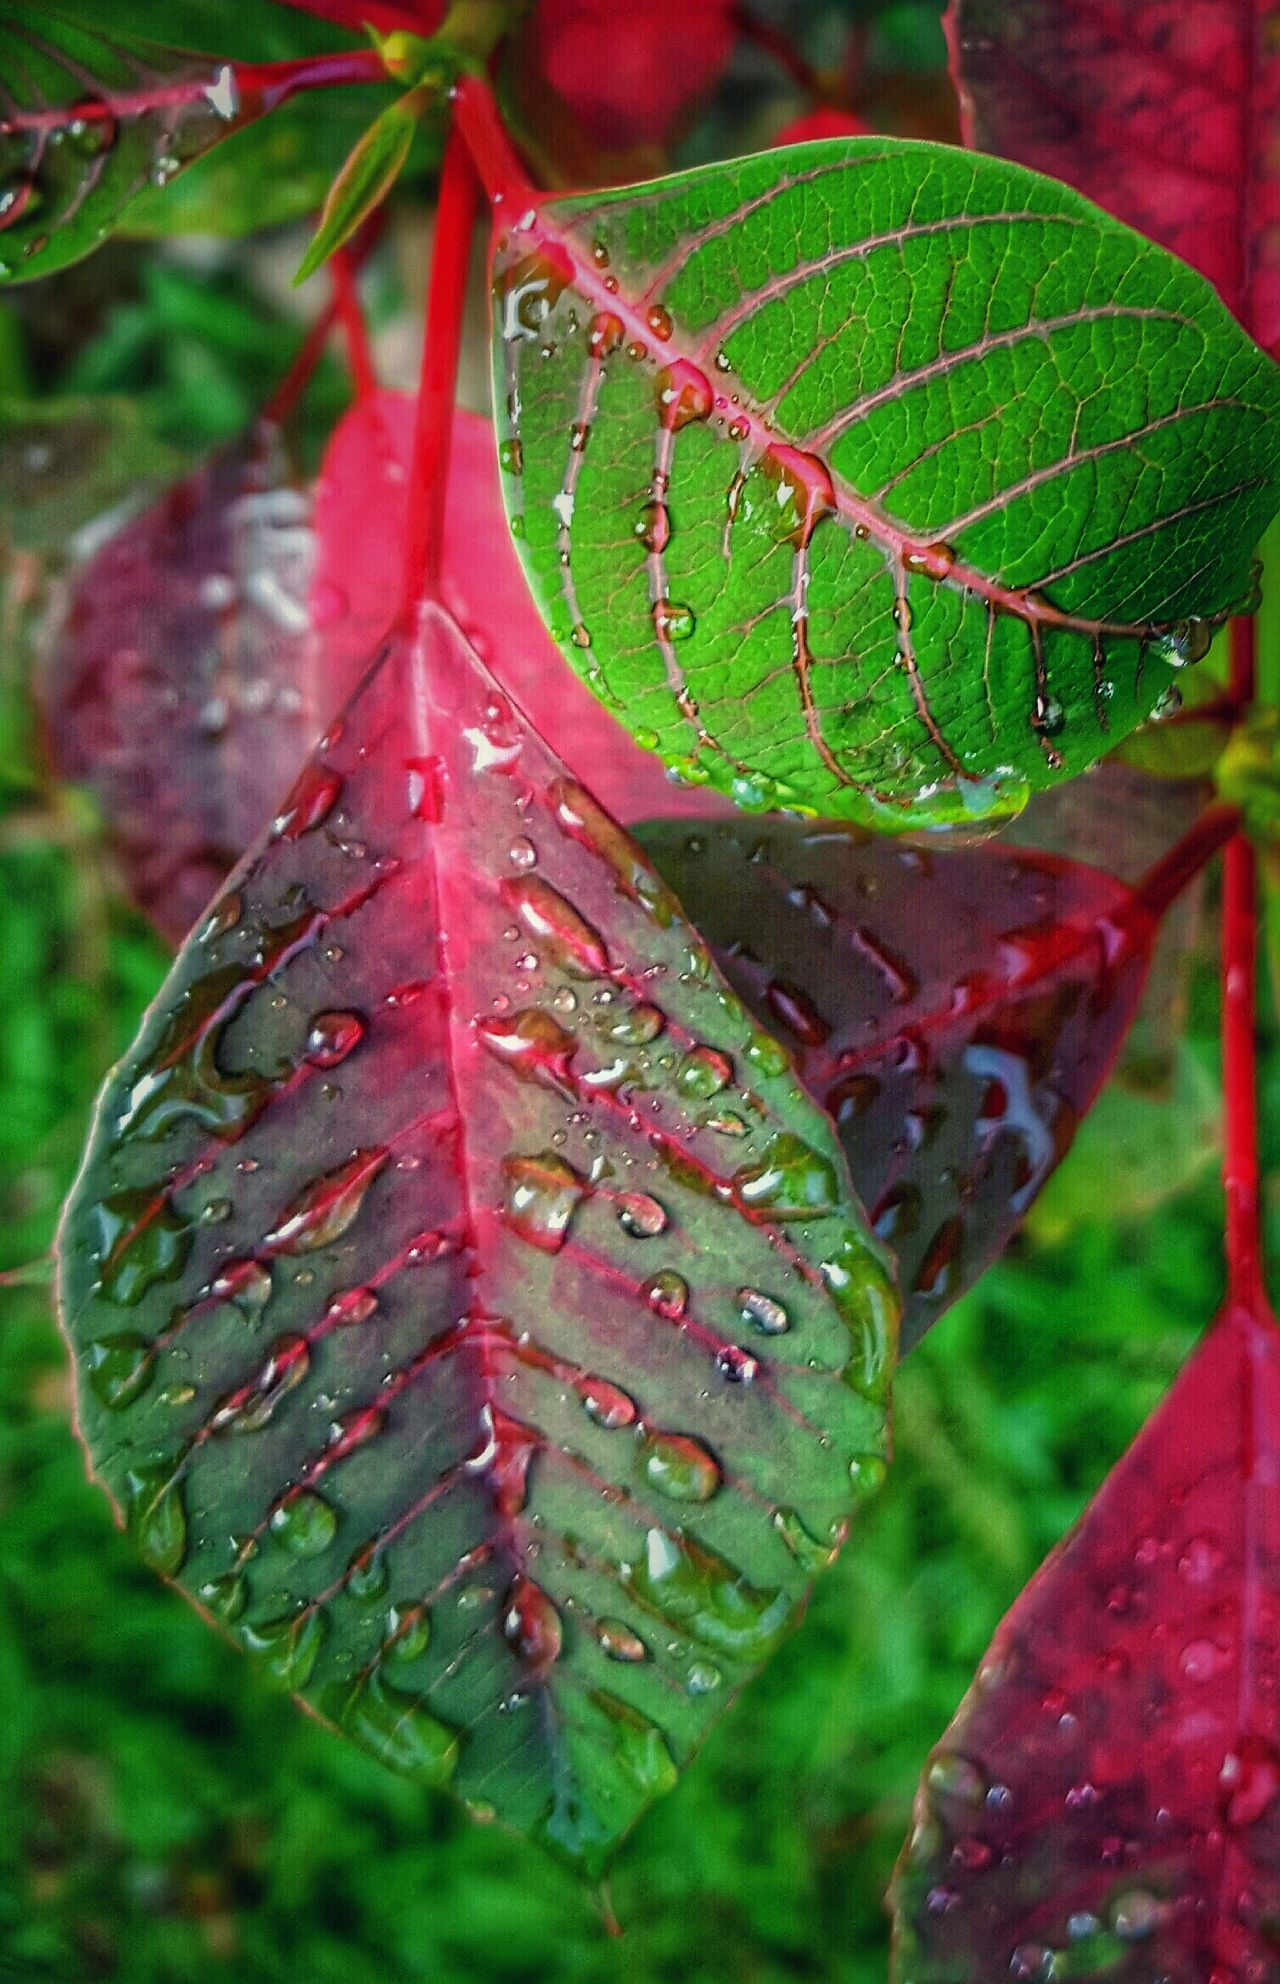 Leaf Nature Close-up Green Color No People Plant Beauty In Nature Outdoors Water Wet Fragility Growth Day Freshness Tree Rain Drops On Leaves